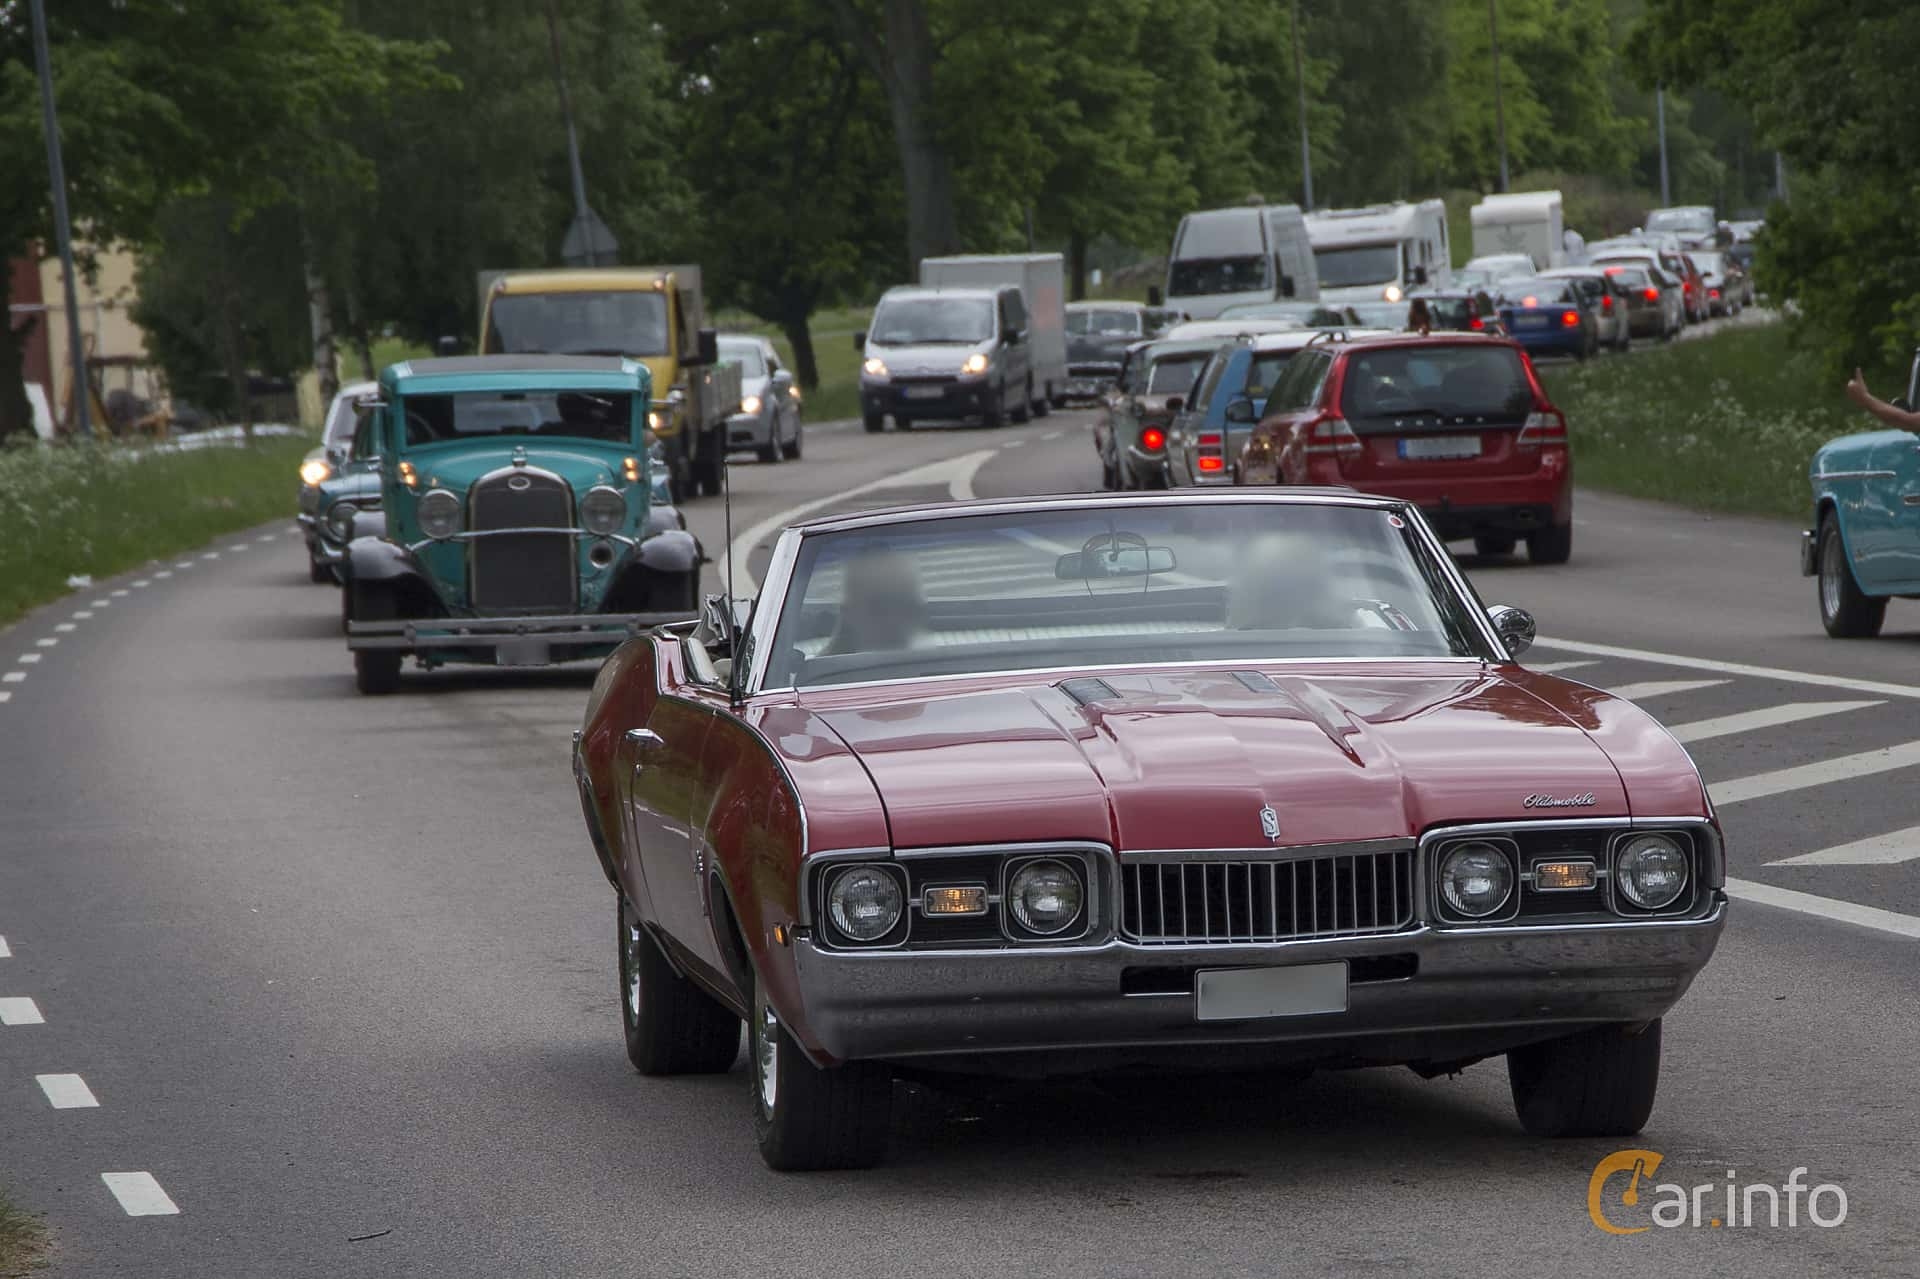 Oldsmobile Cutlass S Convertible 5.7 V8 Automatic, 254hp, 1968 at Hässleholm Power Start of Summer Meet 2016